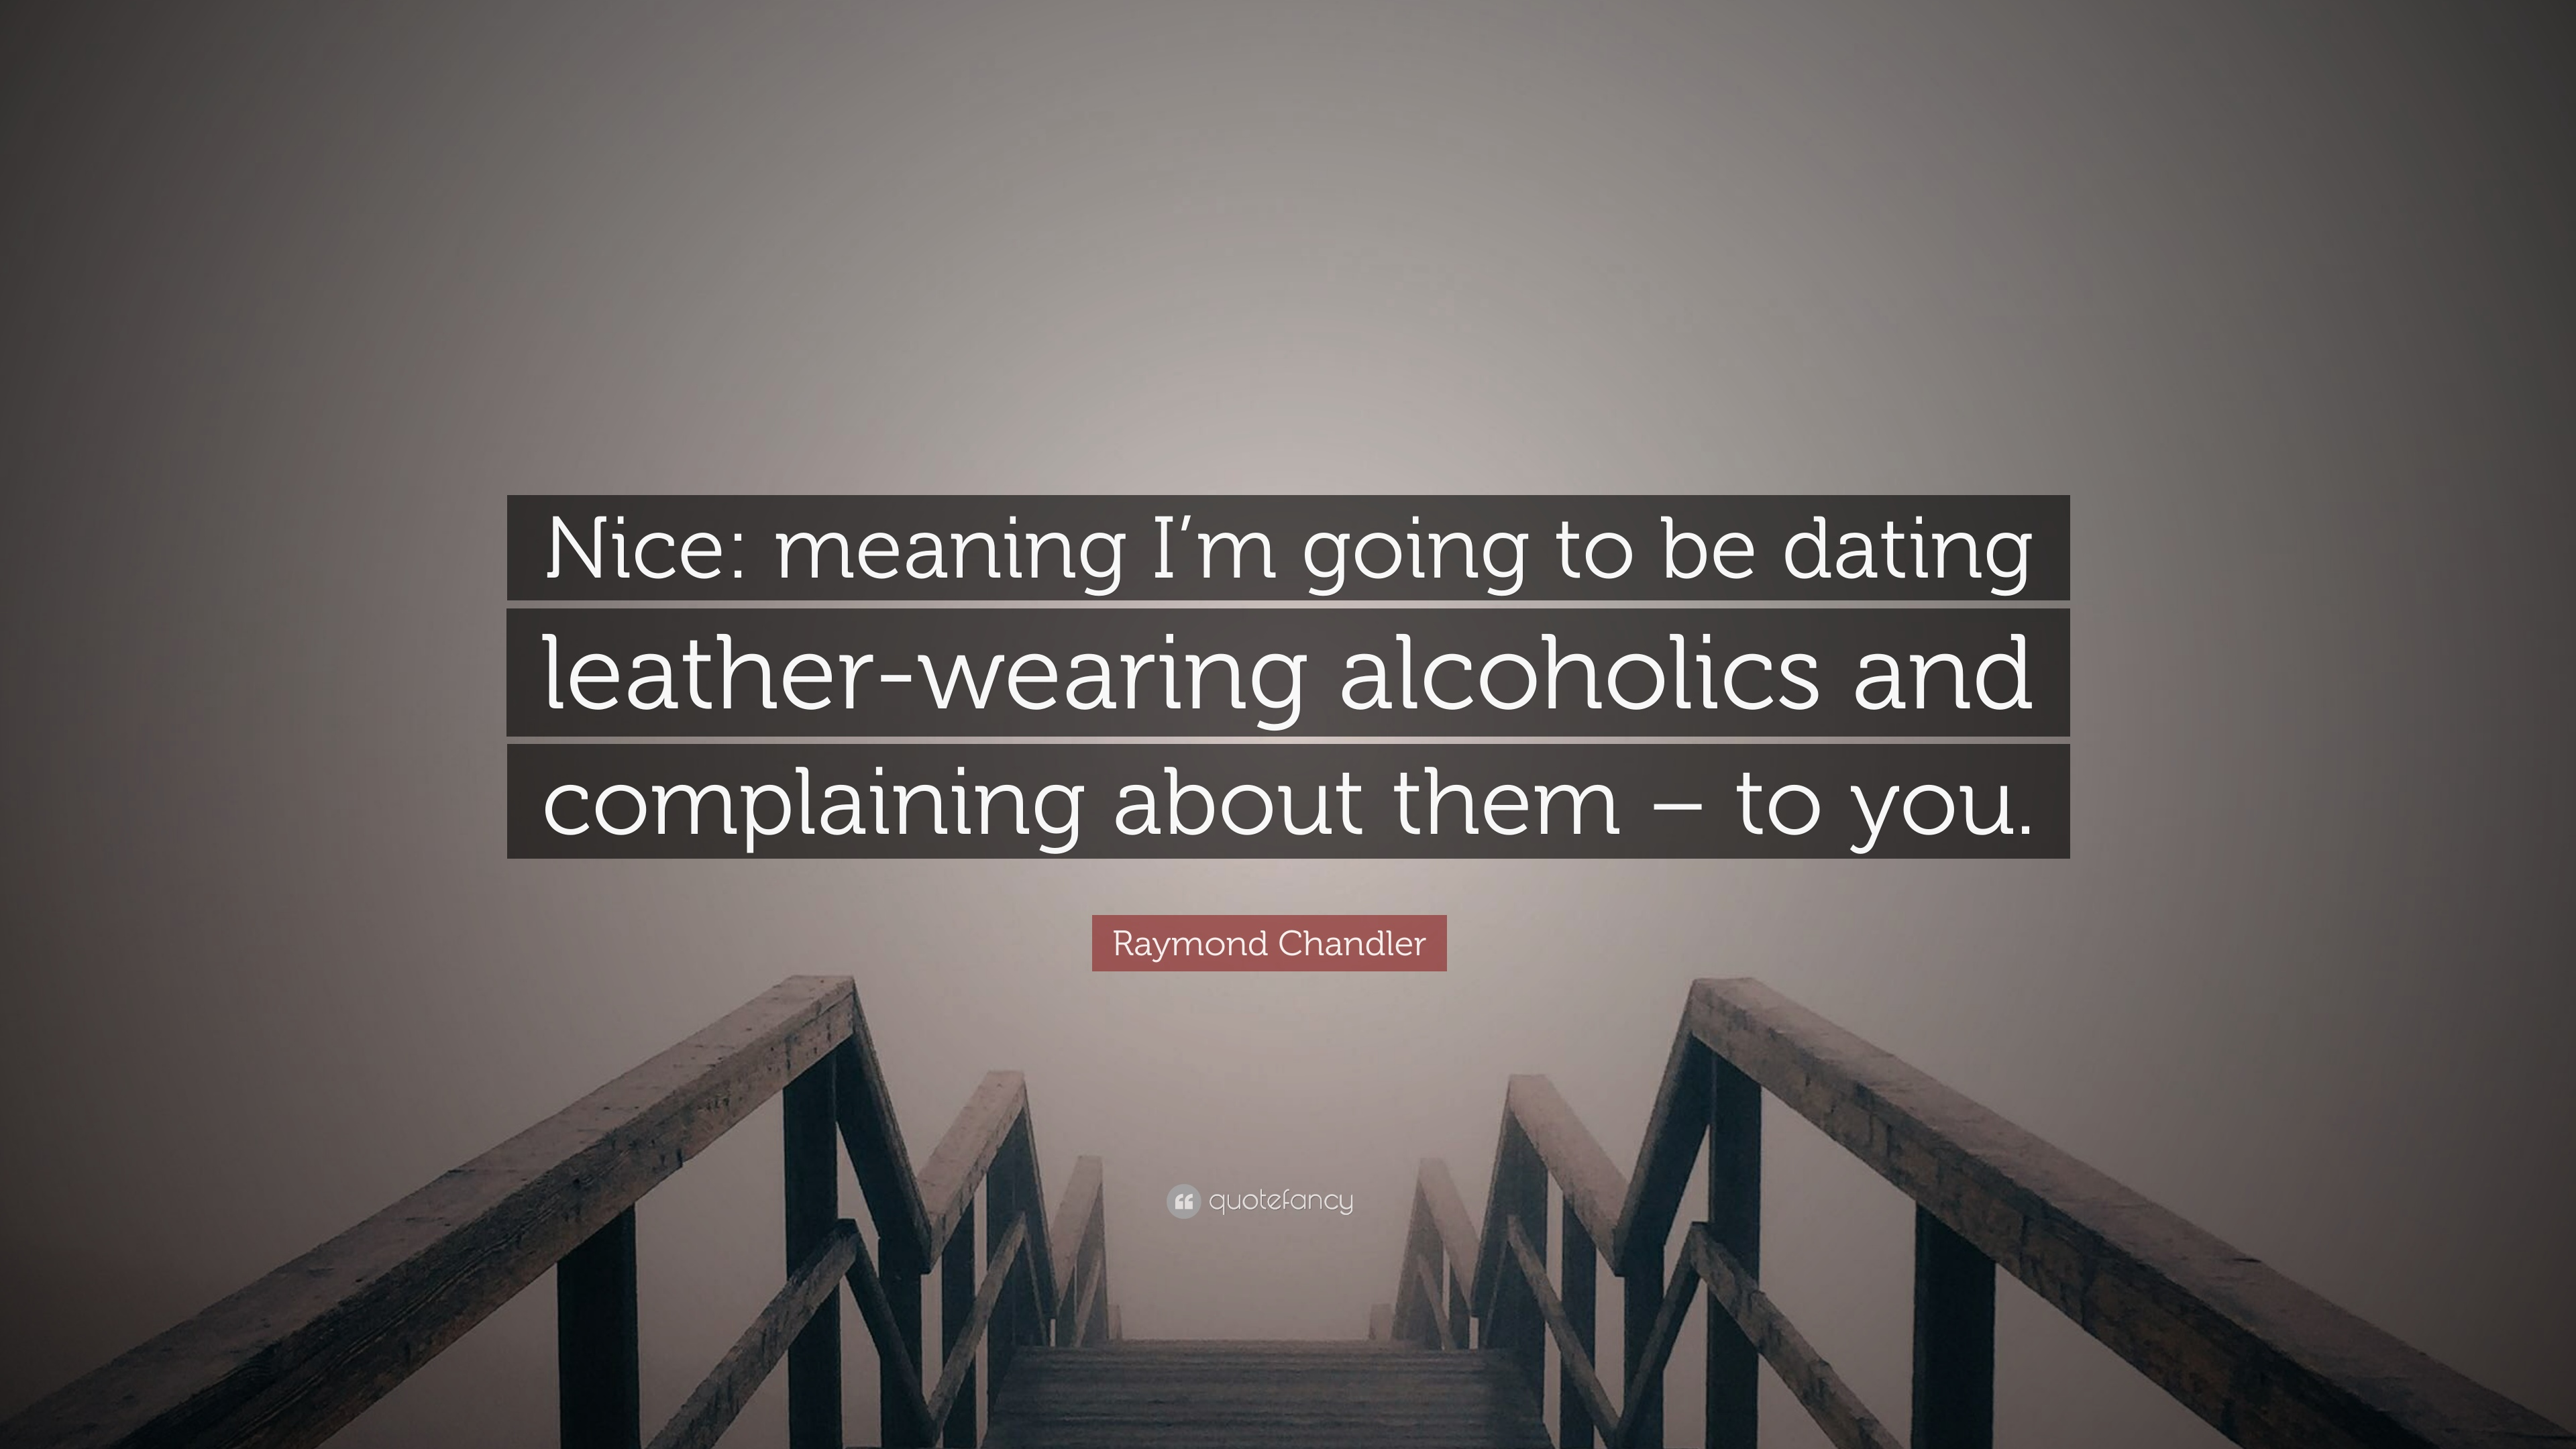 im dating someone meaning